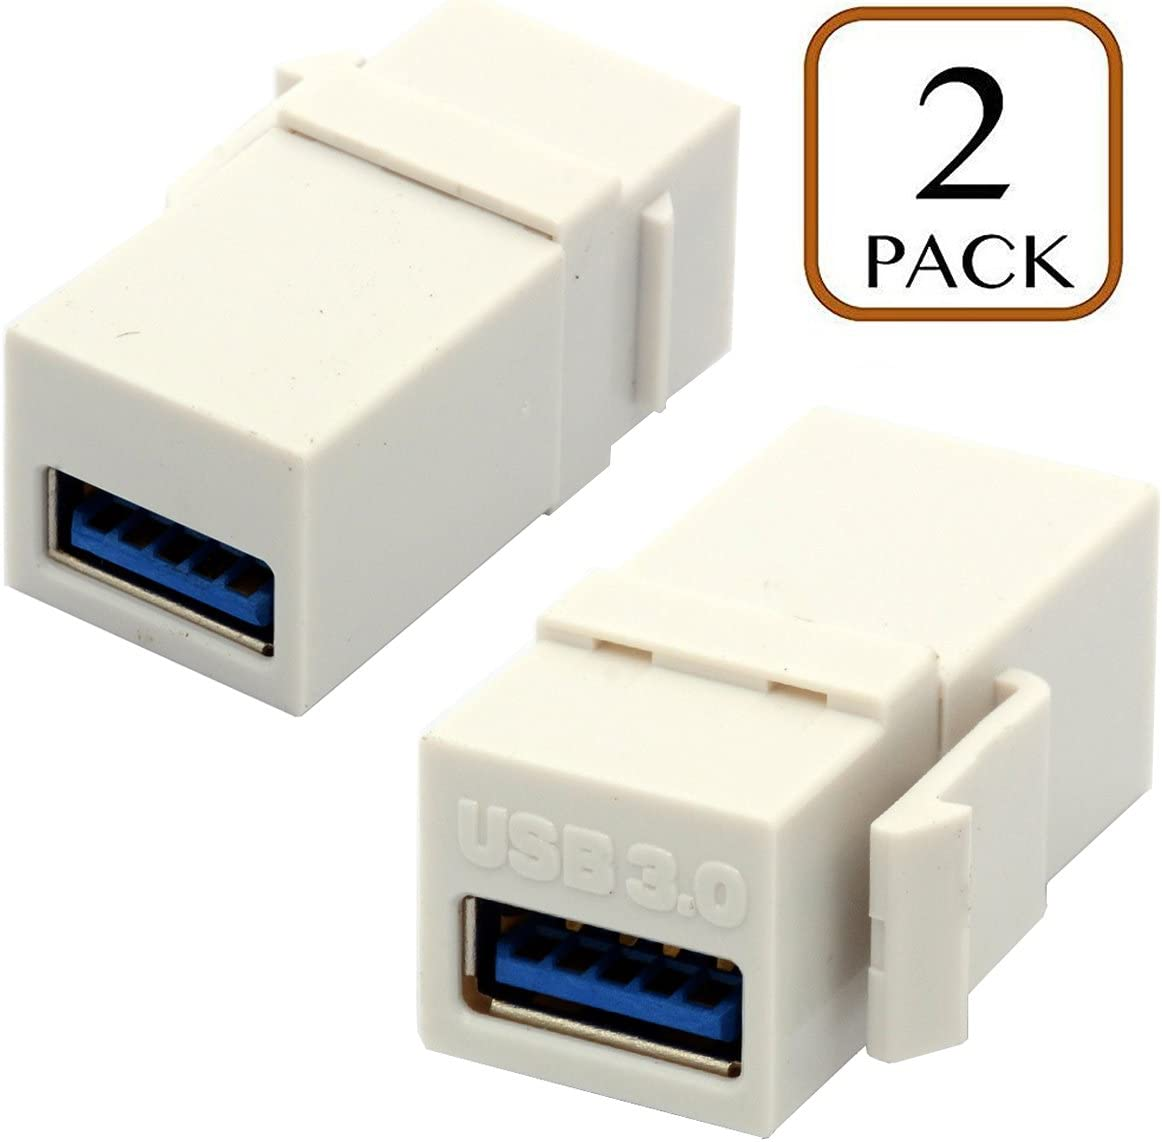 USB 2.0 Female to Female Straight in-Line Coupler Insert Wall Plate Connectors Adapter-Black Poyiccot USB 2.0 Keystone Jack, 2-Pack